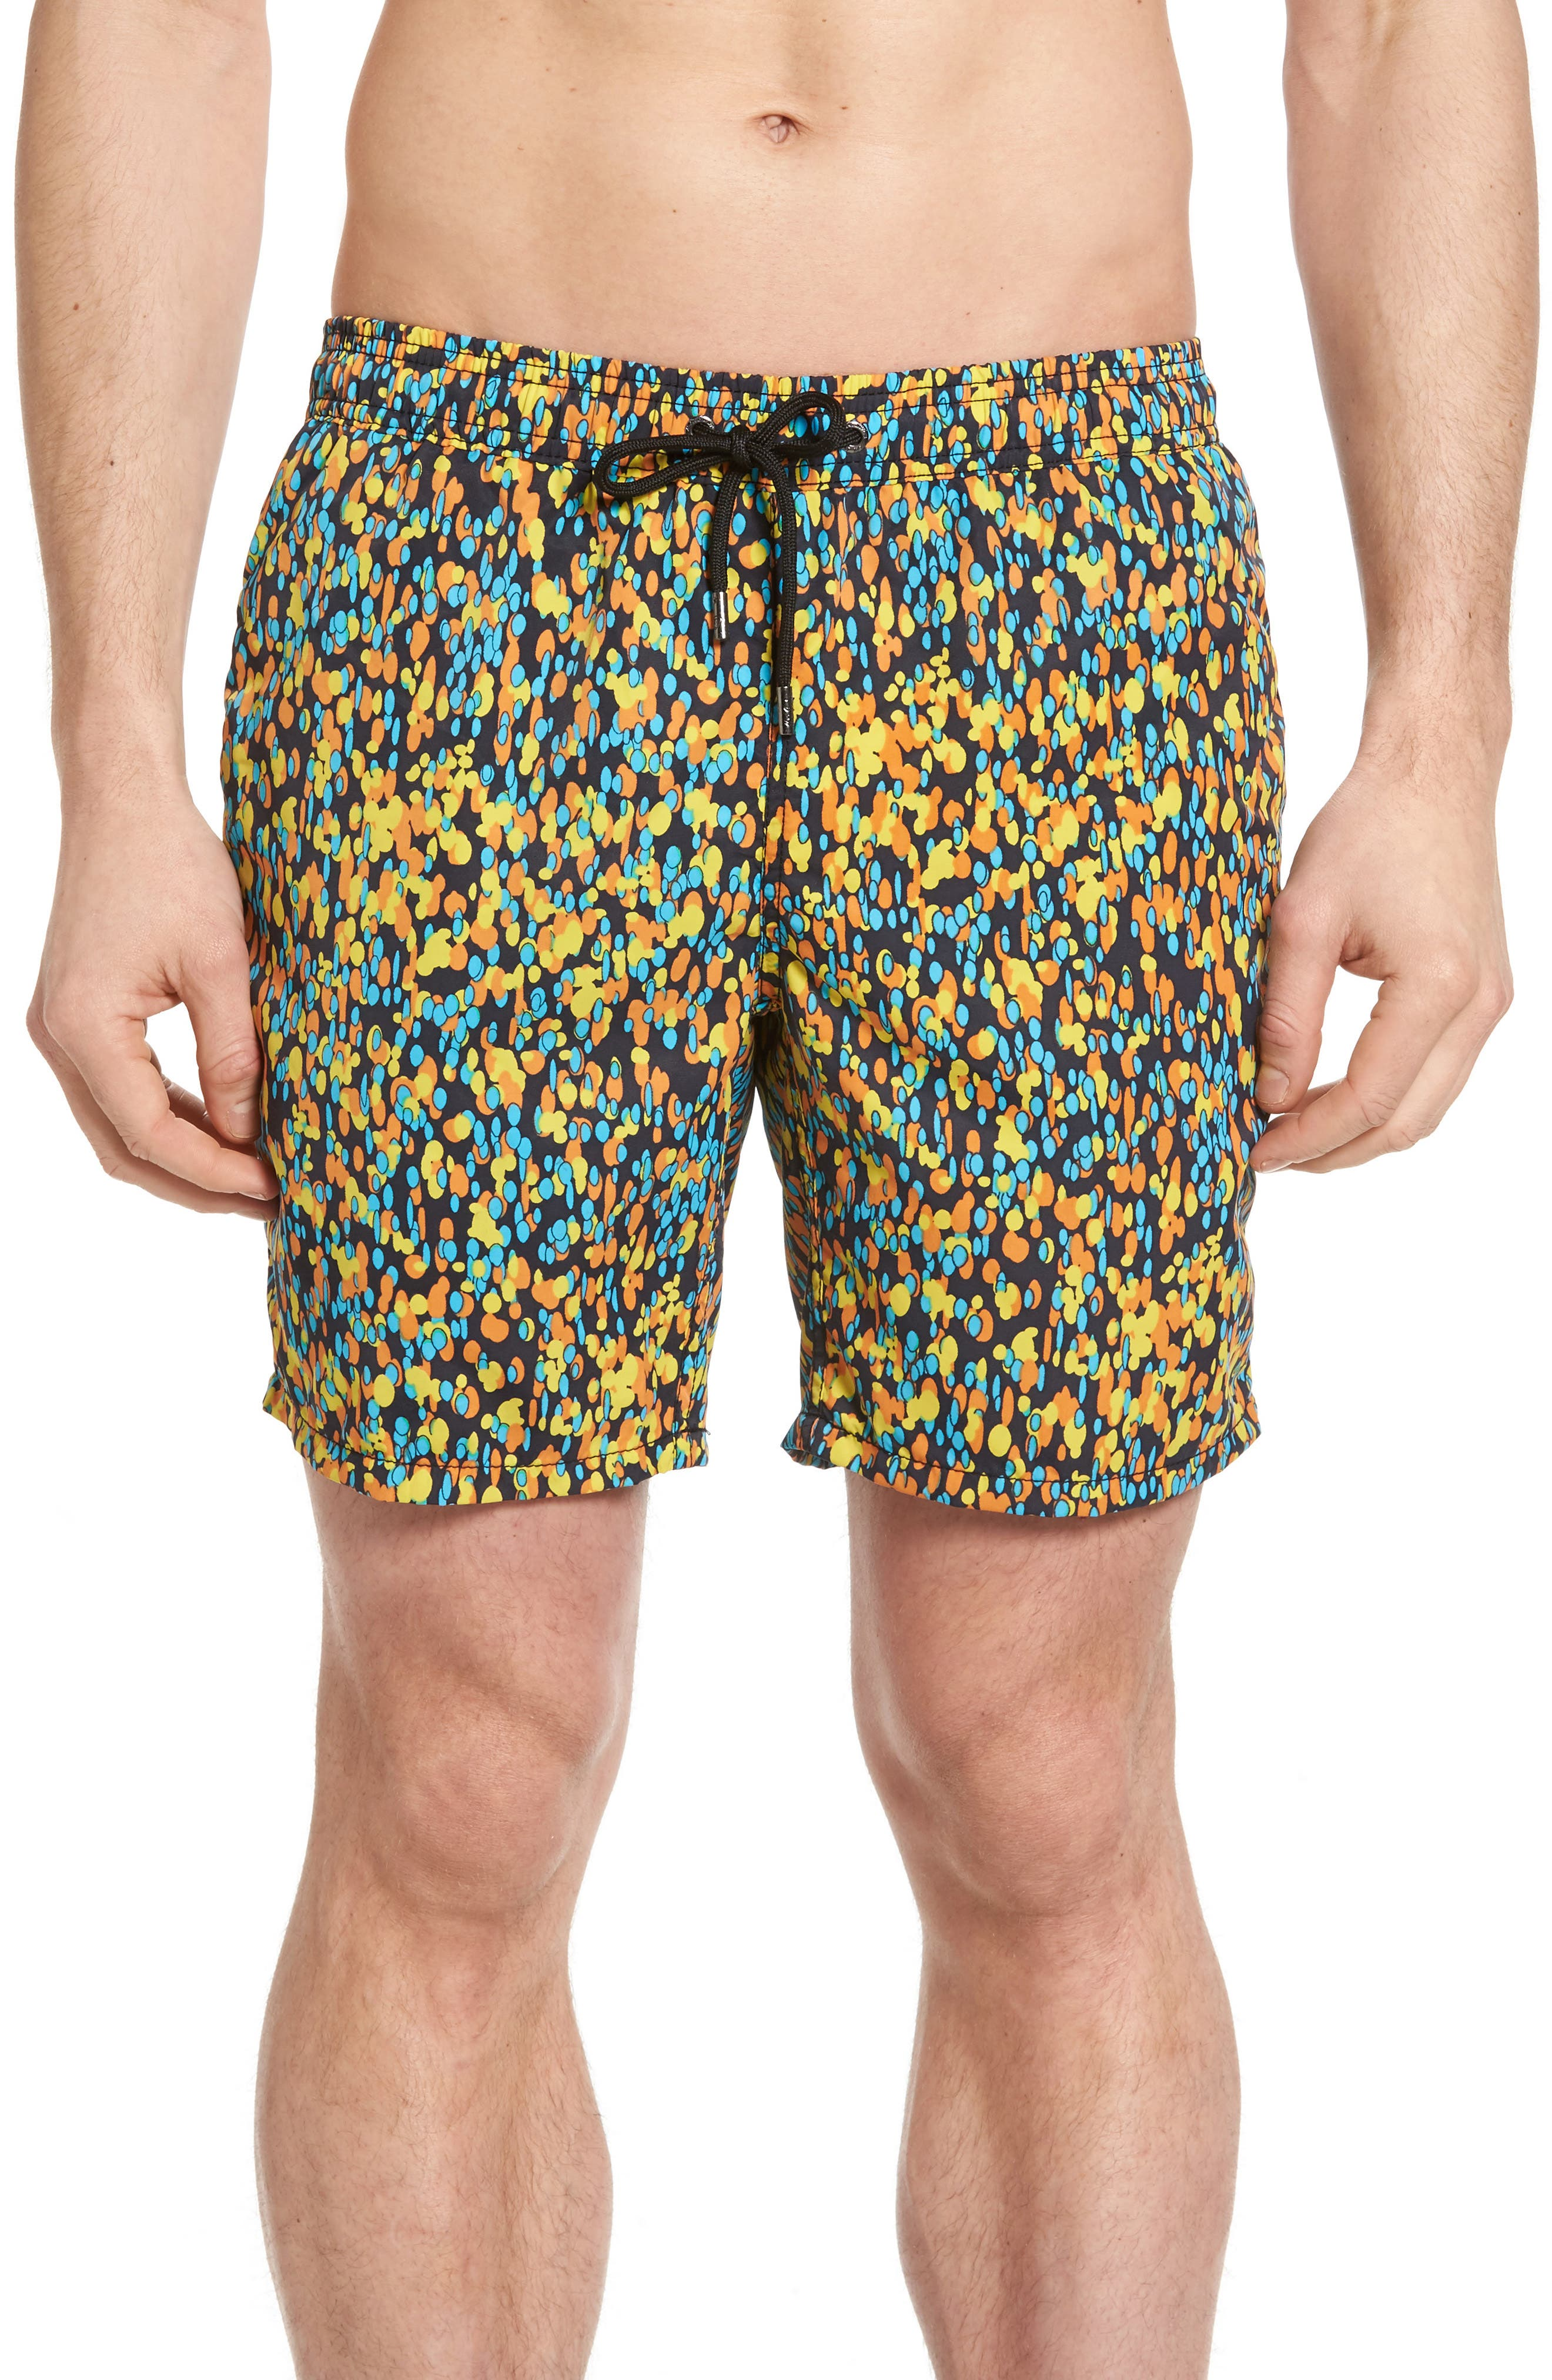 Mr.Swim Splatter Print Swim Trunks